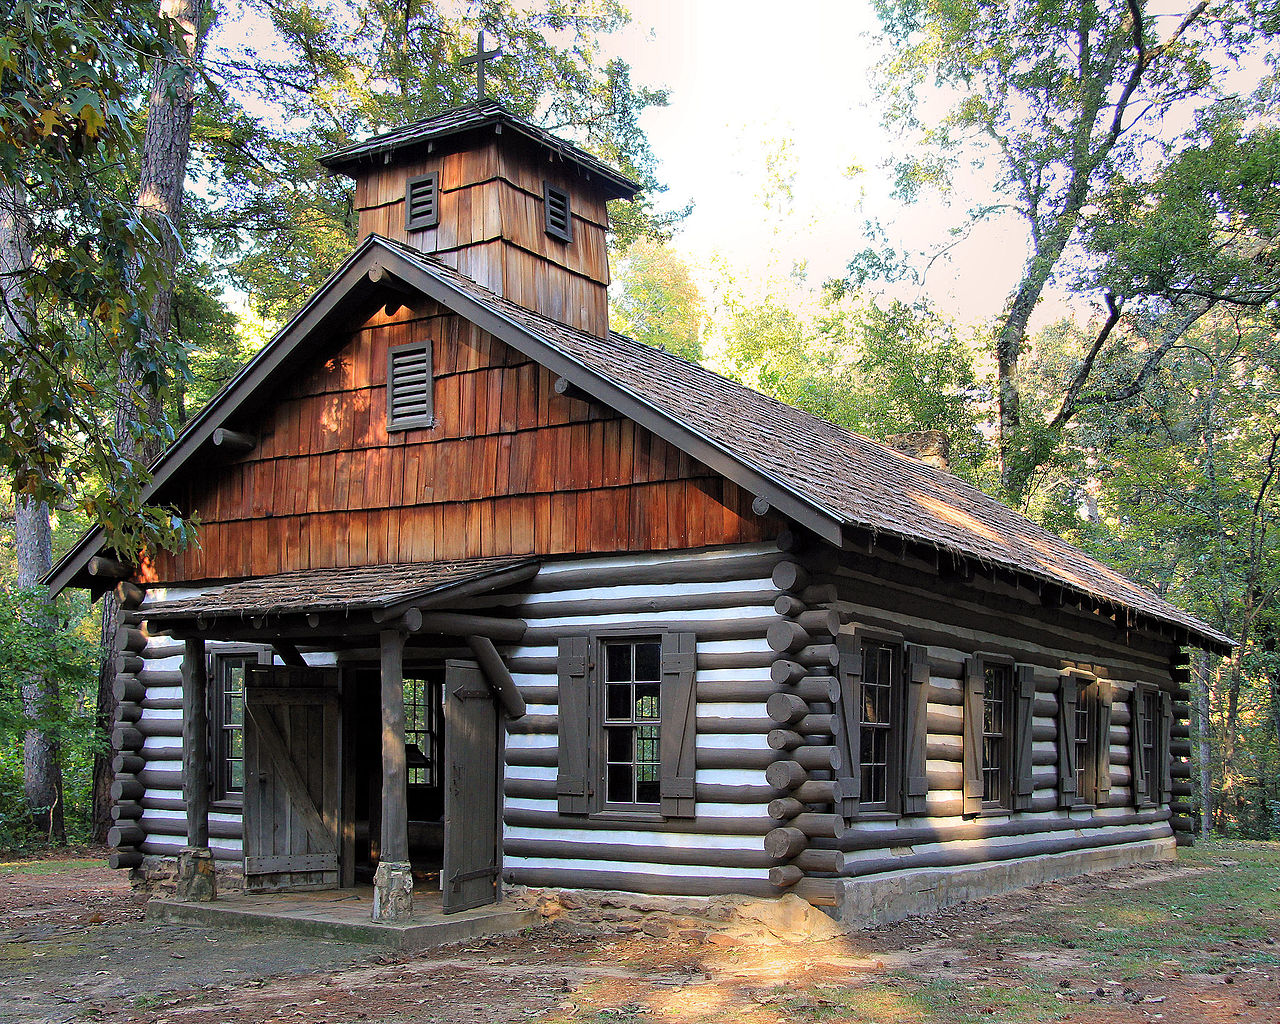 Best Texas State Park Lodges and Cabins